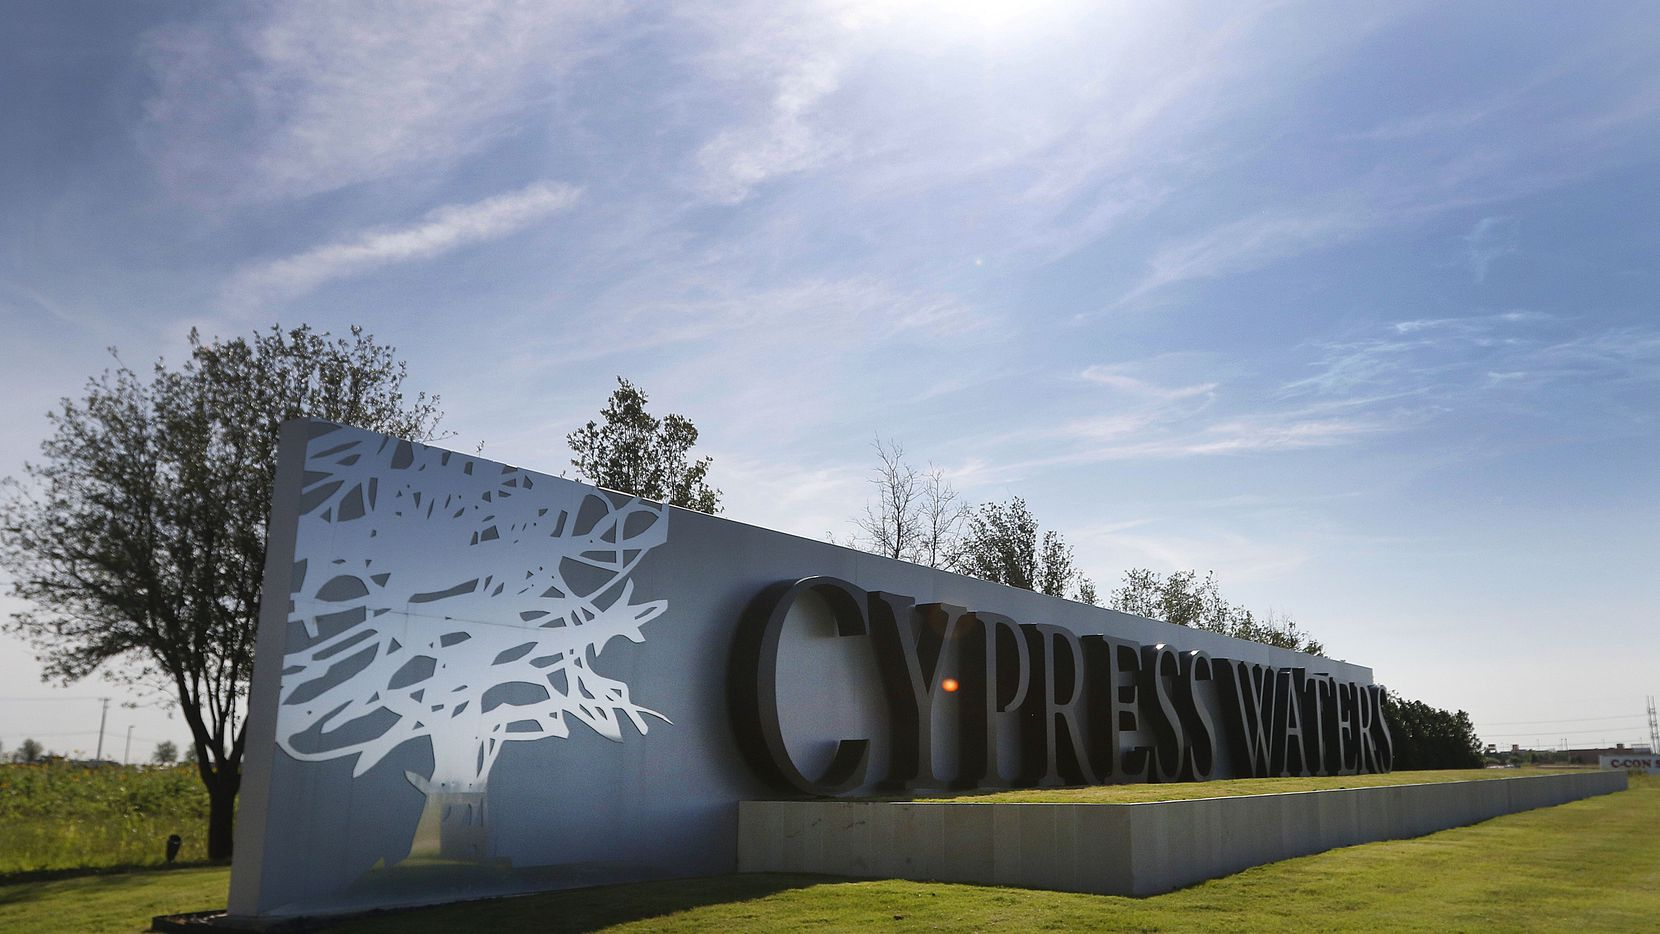 Cypress Waters is home to more than 10,000 workers.